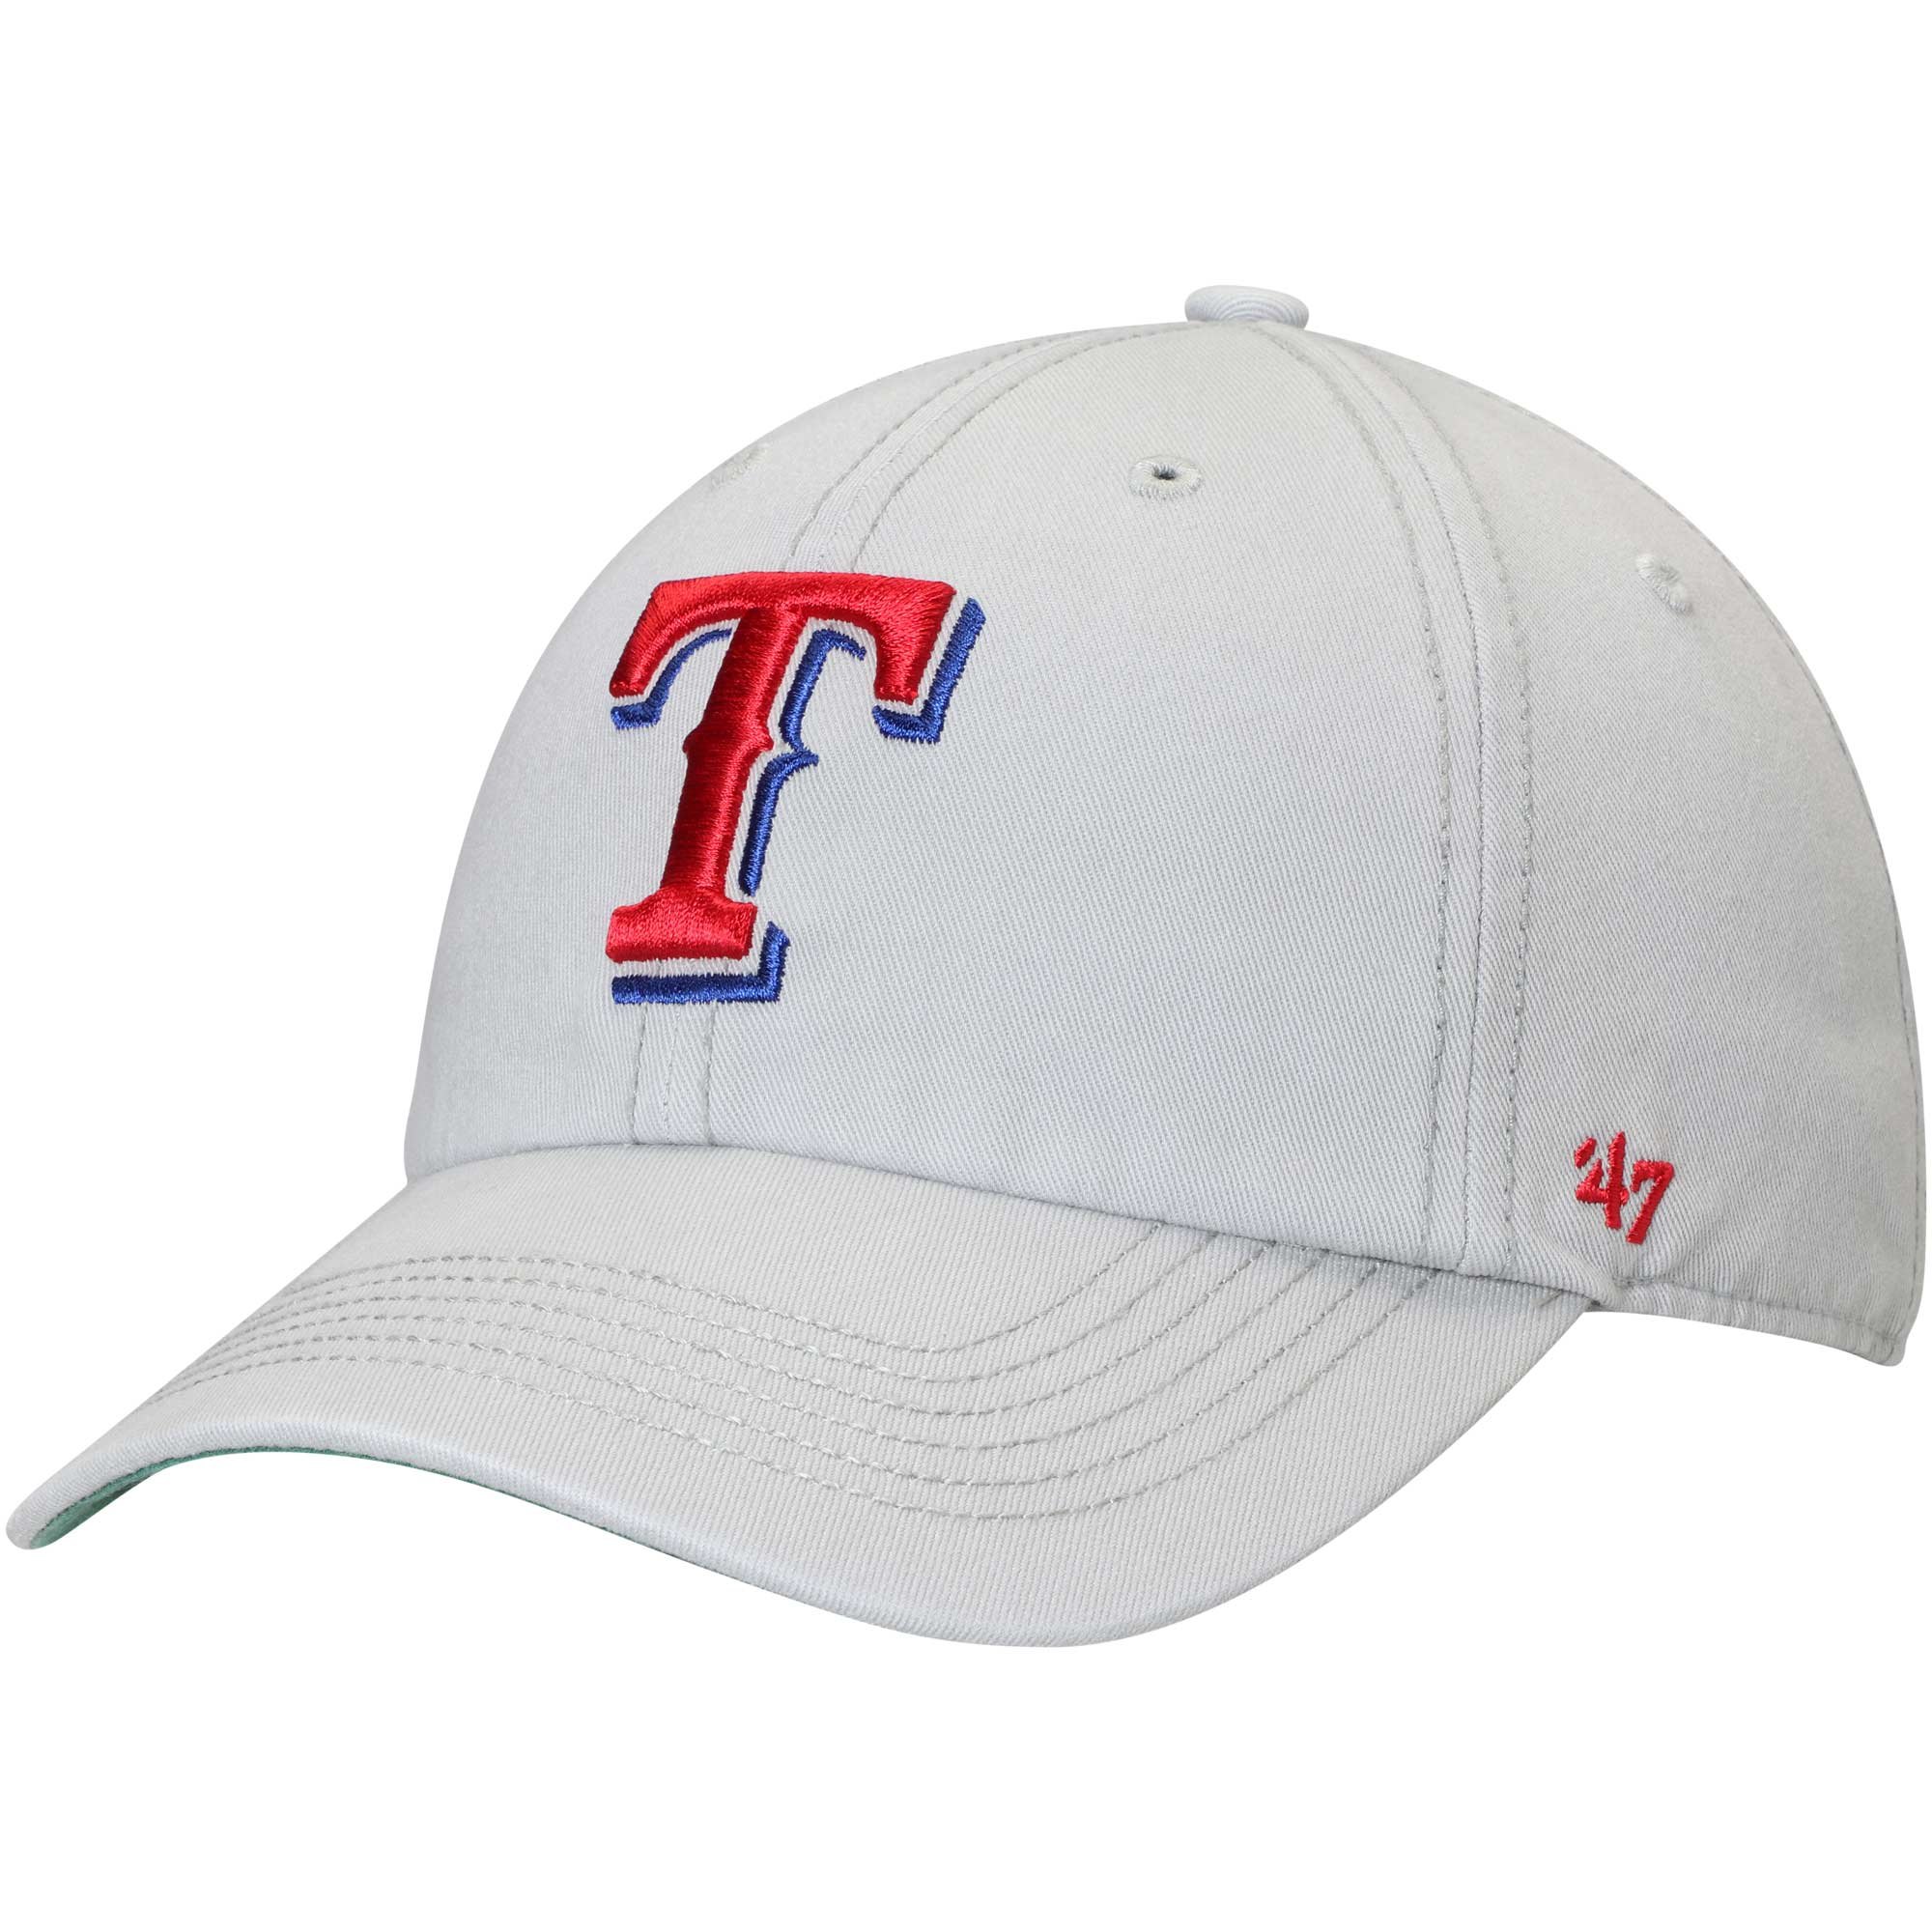 new products 59381 e8ad8 ... low price texas rangers 47 primary logo franchise fitted hat gray 06429  33b5a